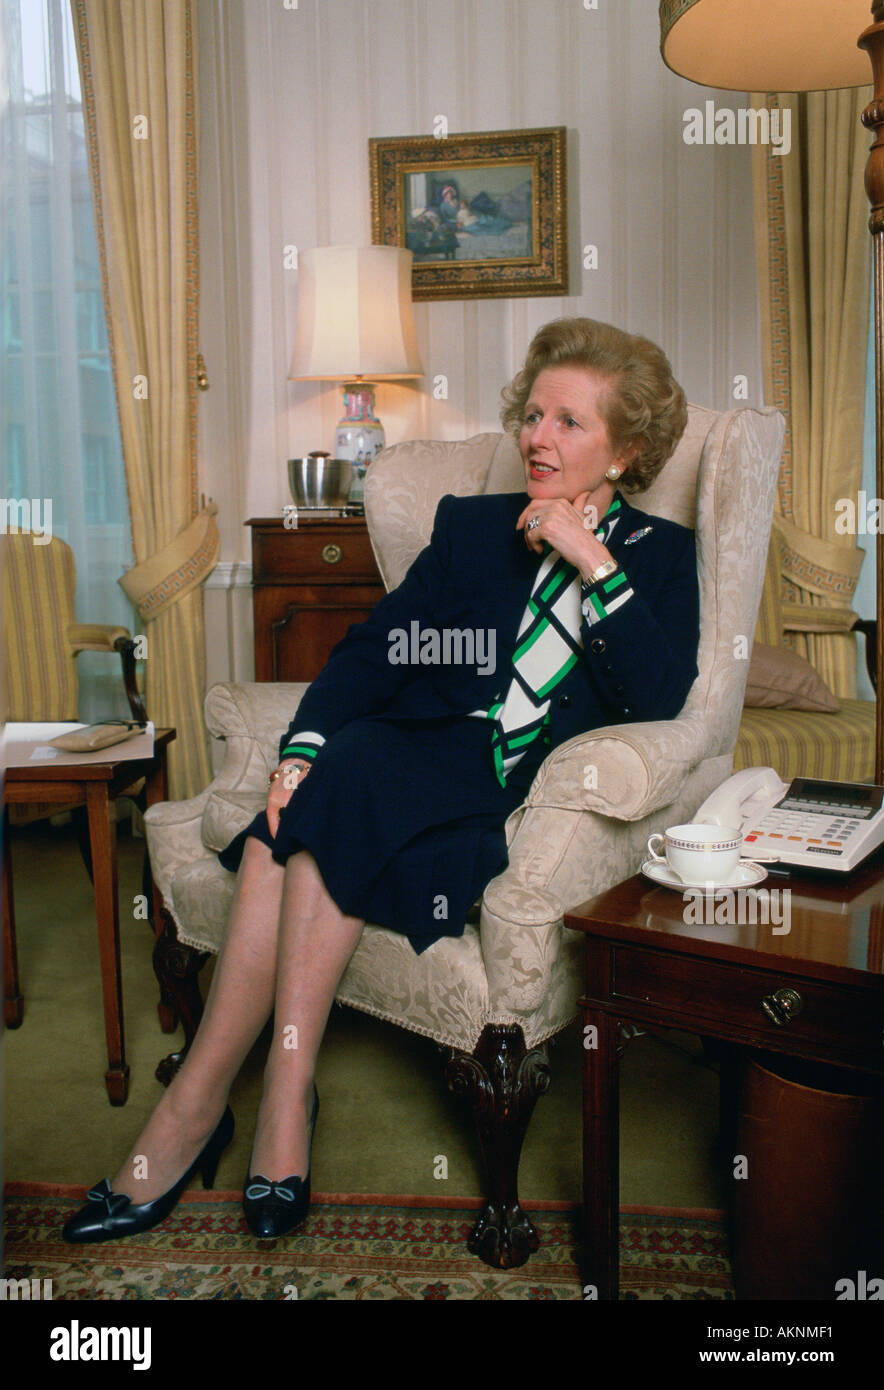 British Prime Minister Margaret Thatcher private session in living room at 10 Downing Street London United Kingdom - Stock Image